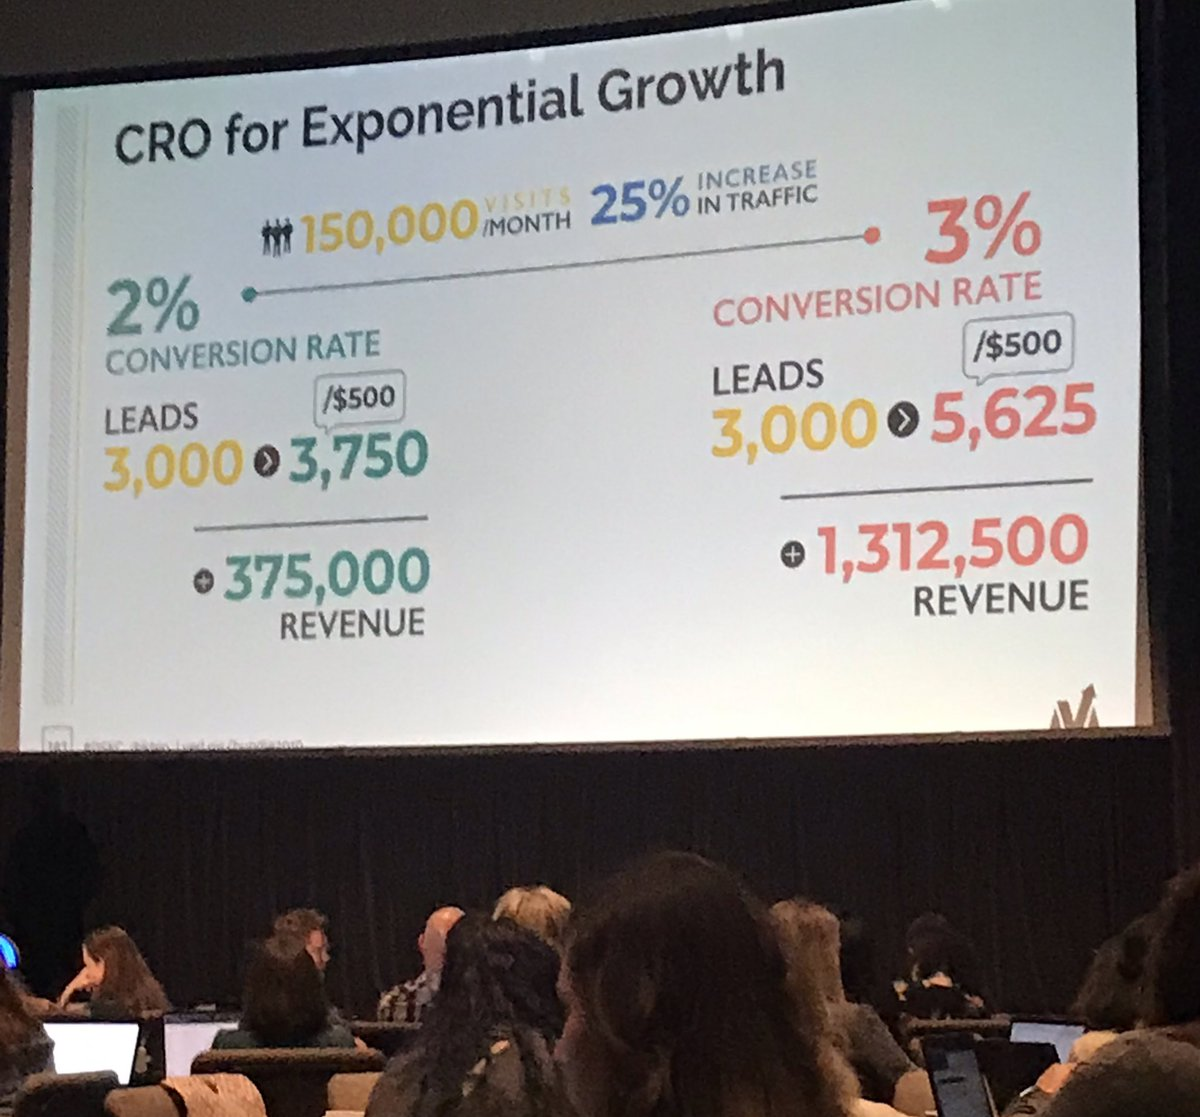 Driving traffic isn't always the best solution. How about increasing conversion rates? @ermarketing #dskc <br>http://pic.twitter.com/eK7xfOu8AL &ndash; à Overland Park Convention Center